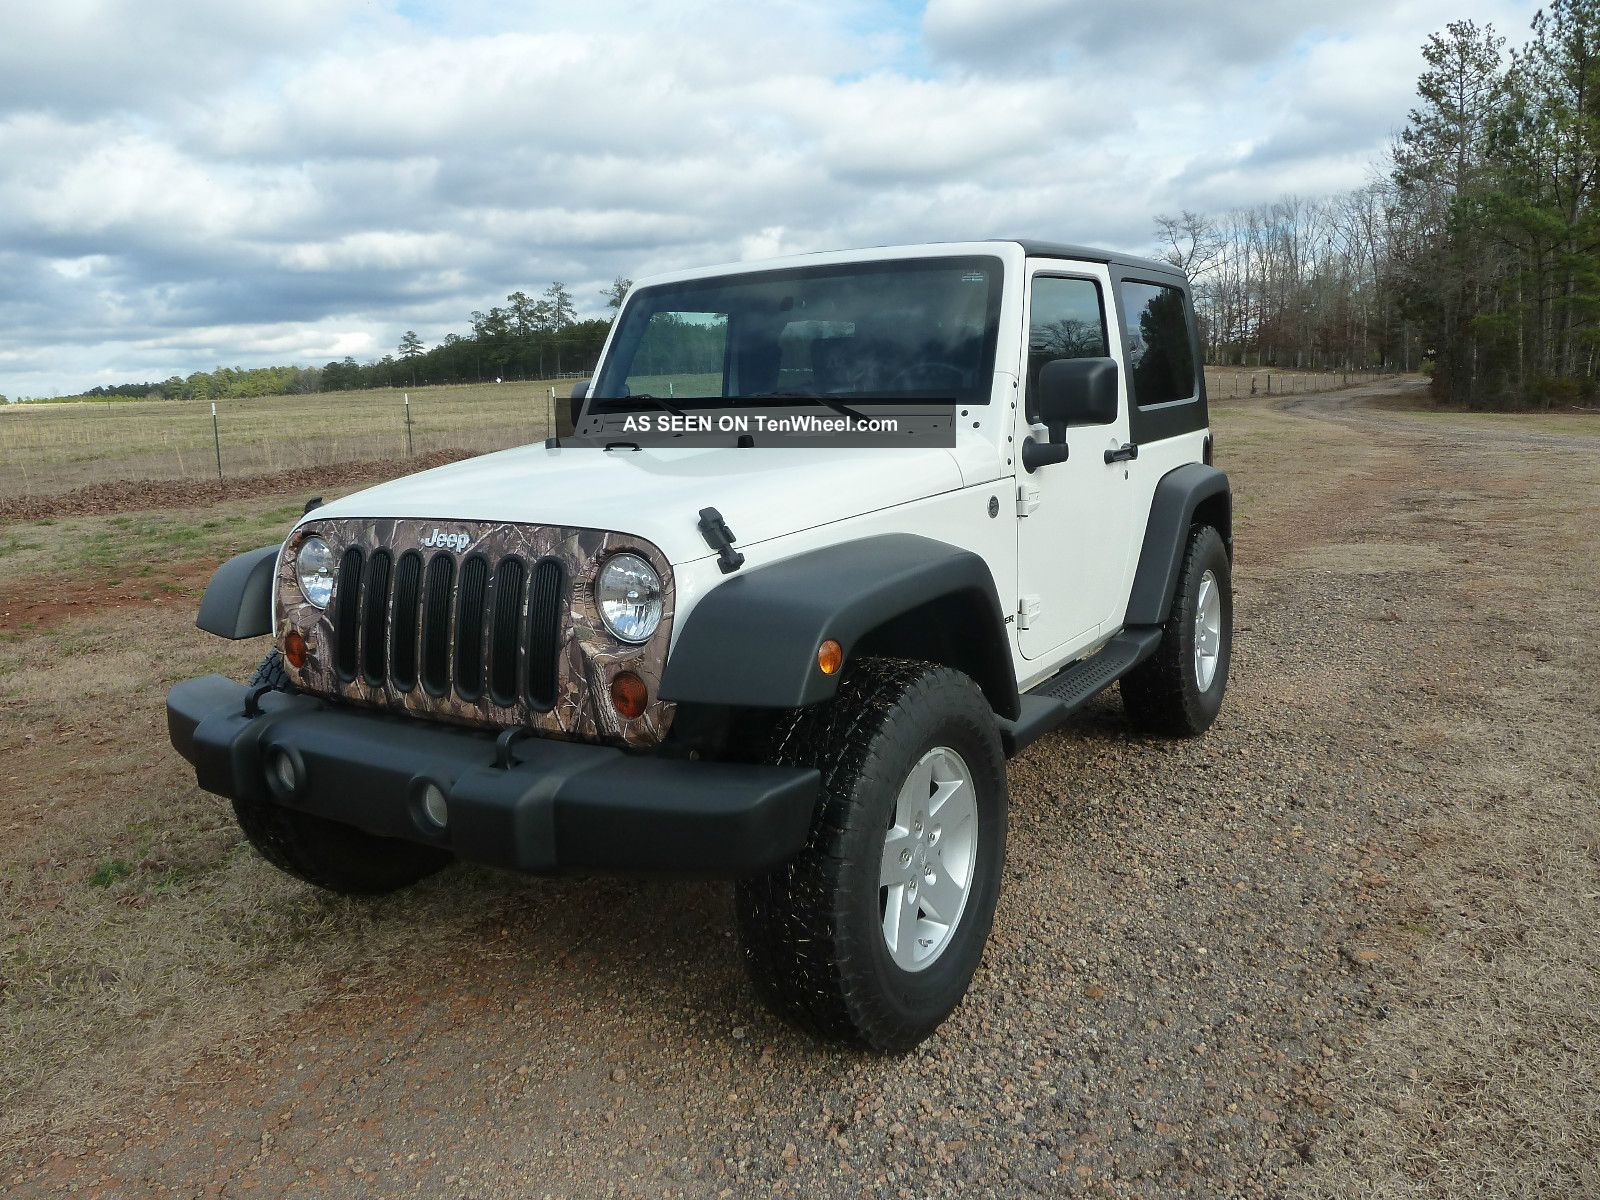 jeep hard top Wrangler 2 Door photo free download image Wallpaper